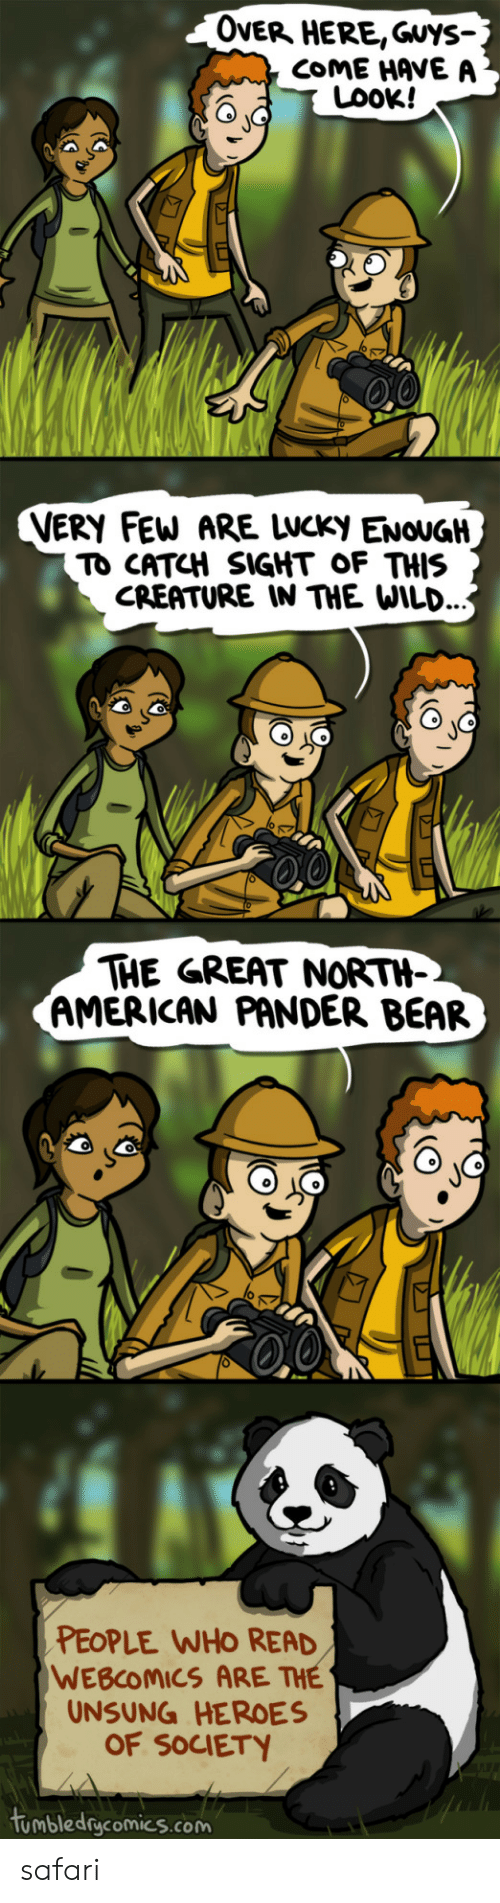 American, Bear, and Heroes: OveR HERE,Guys-  COME HAVE A  LOOK!  VERY FEW ARE LWCKy ENOUGH  TO CATCH SIGHT OF THIS  CREATURE IN THE WILD.  THE GREAT NORTH-  AMERICAN PANDER BEAR  PEOPLE WHO READ  WEBCOMICS ARE THE  UNSUNG HEROES  OF SOCIETY  tumbledgcomics.com safari